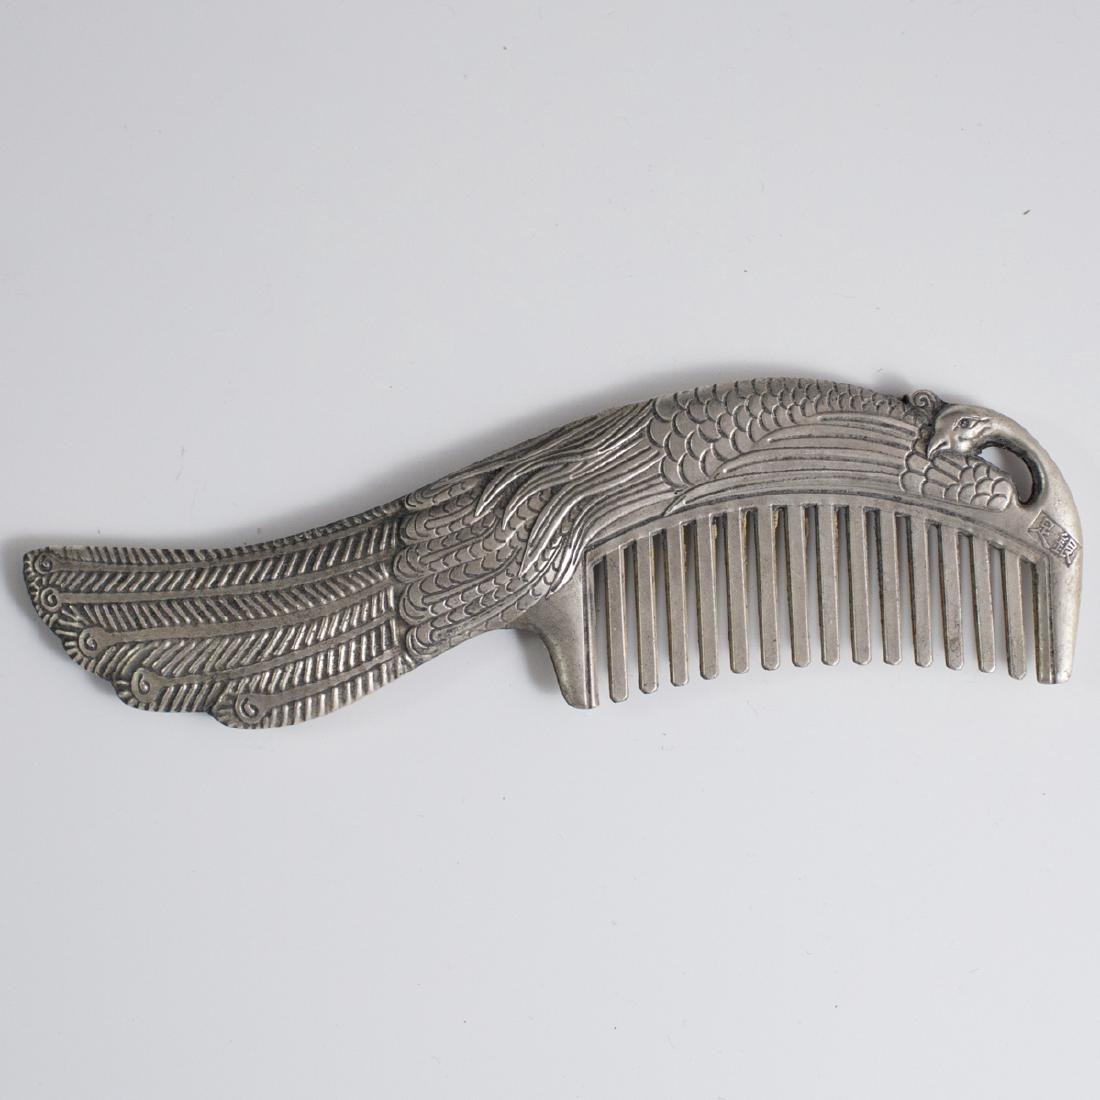 Chinese Stamped Peacock Comb - 2